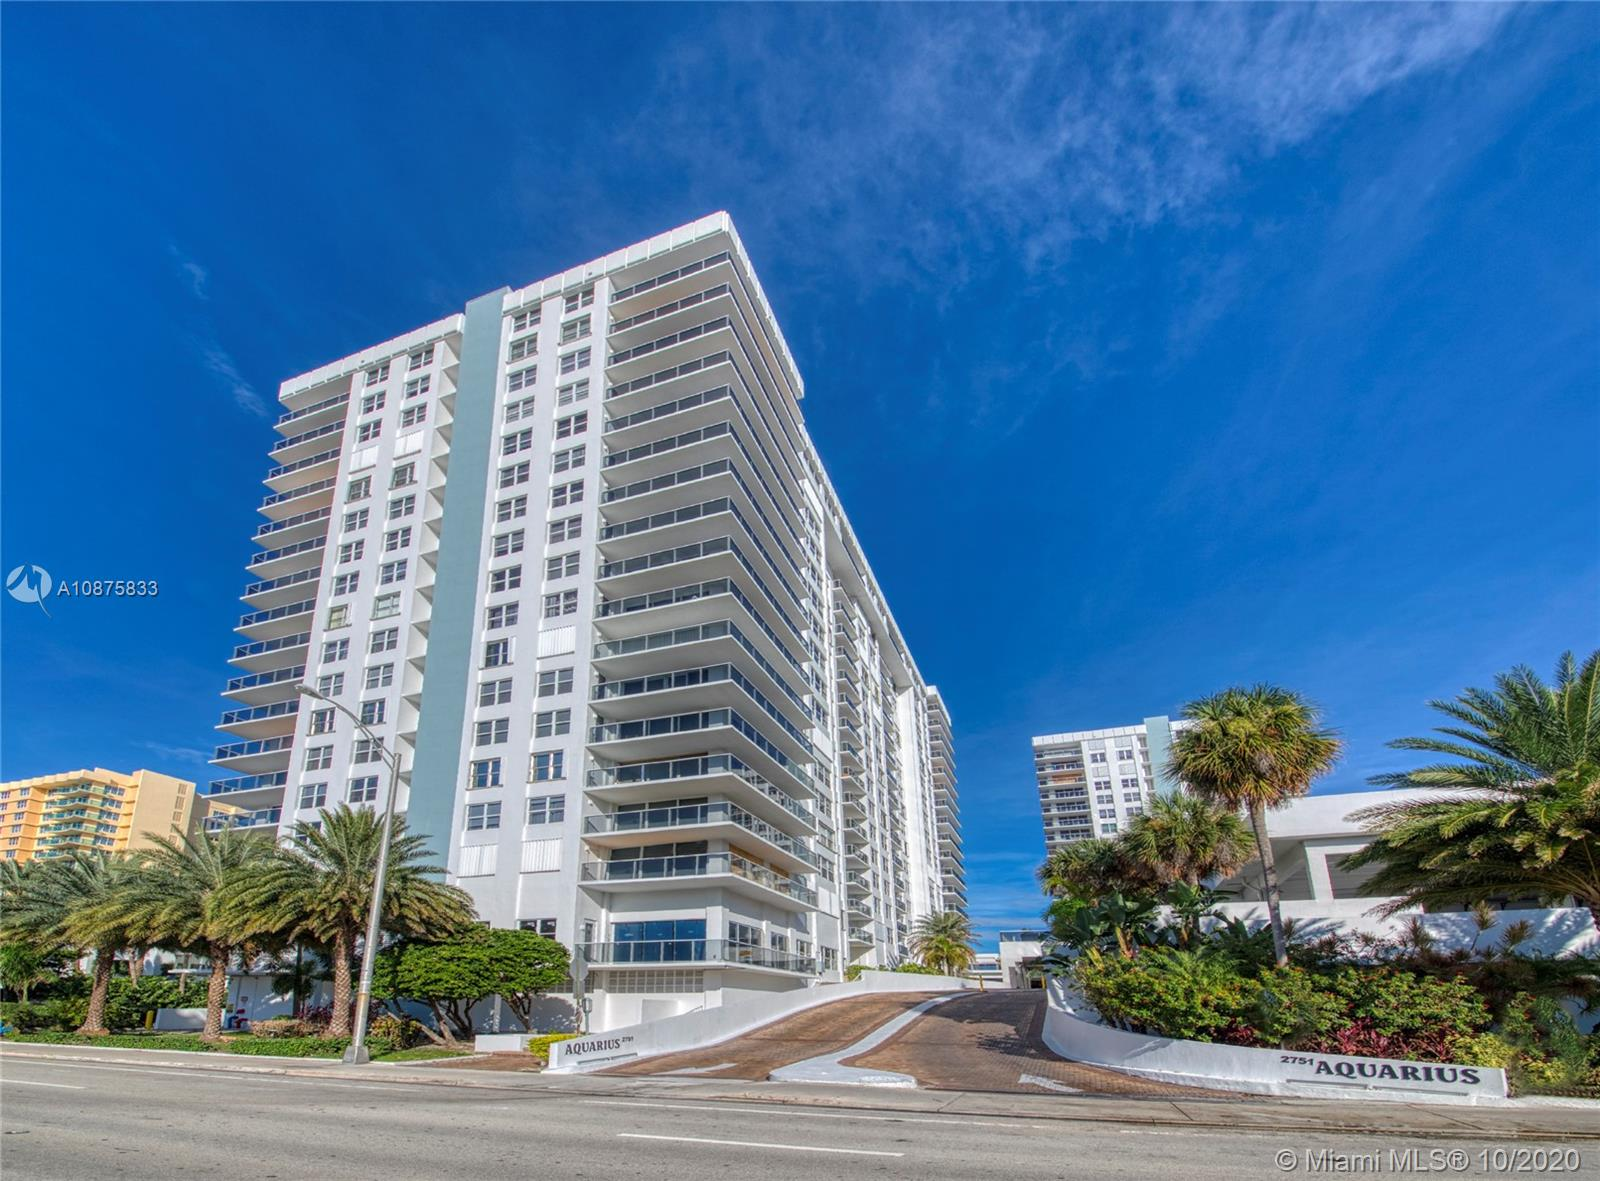 Aquarius #308S - 2751 S Ocean Dr #308S, Hollywood, FL 33019